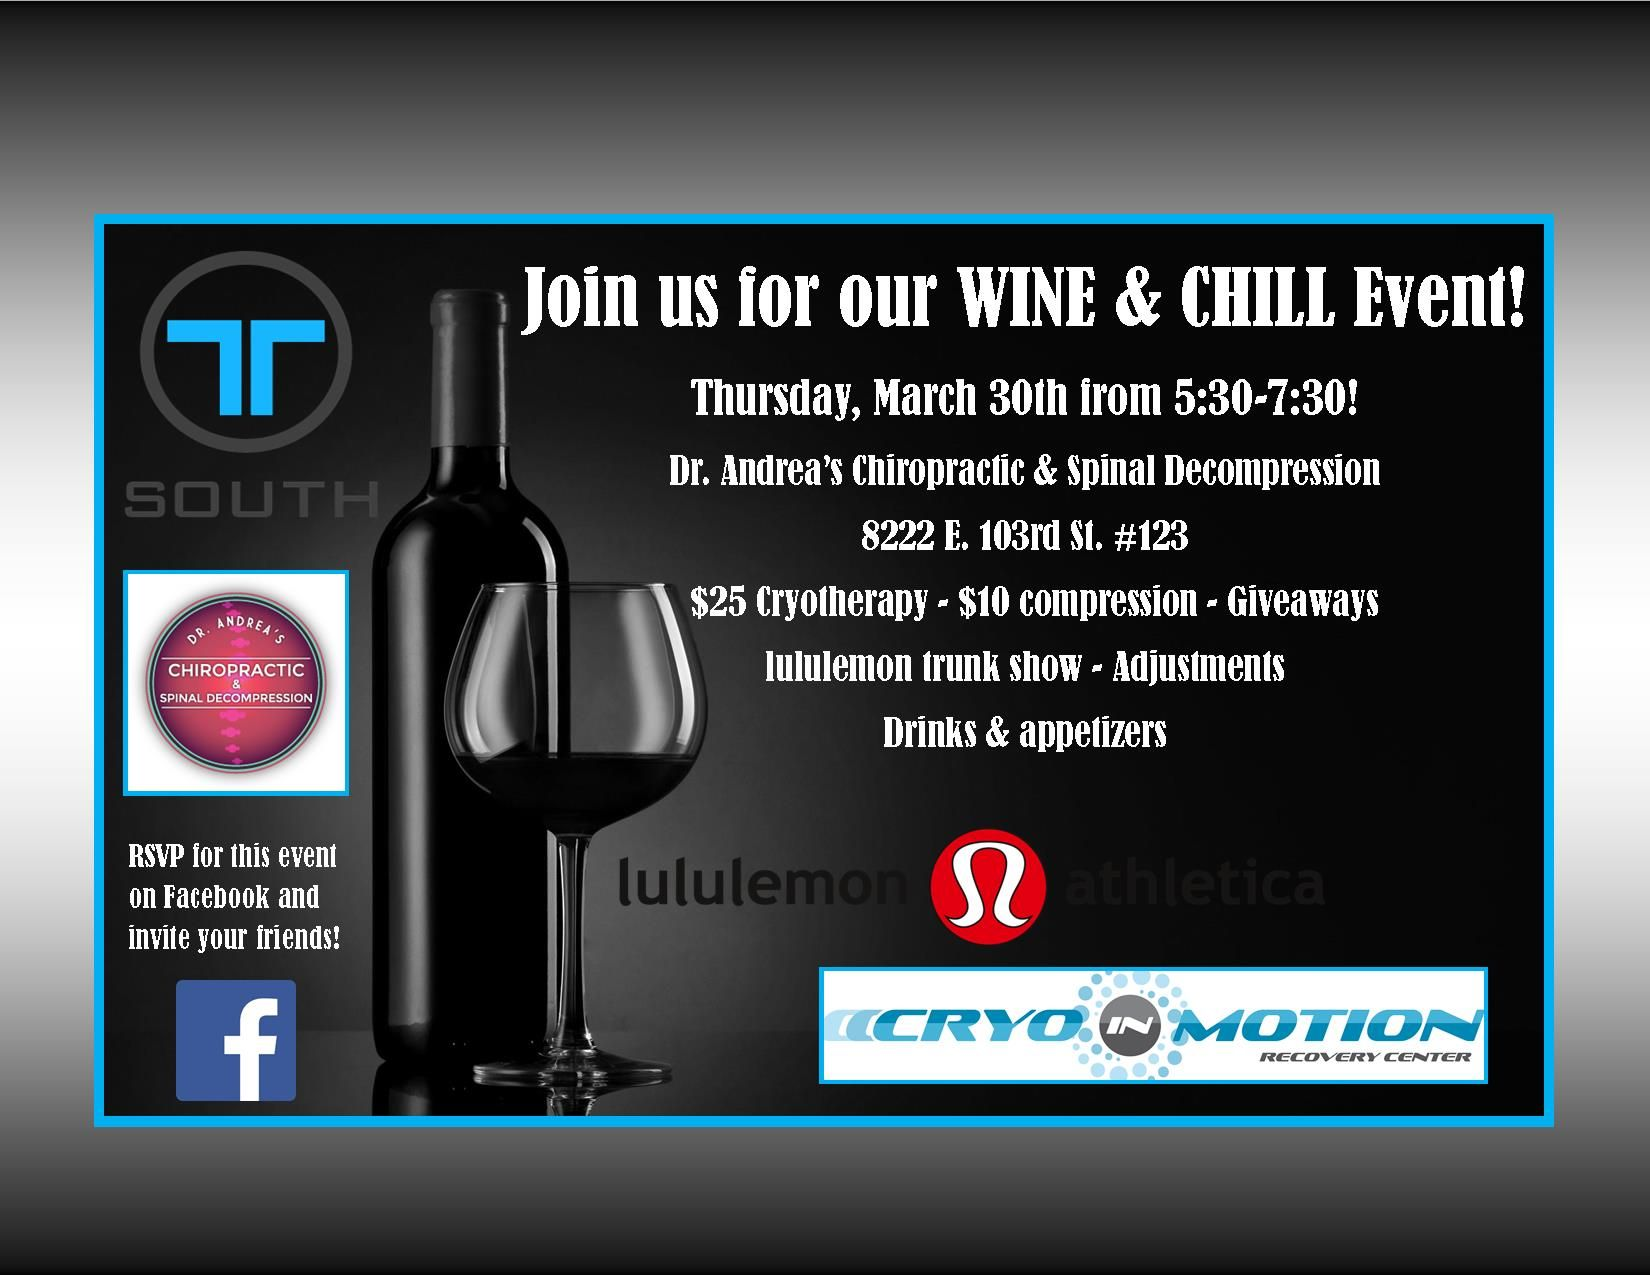 Wine & Chill Event Flyer